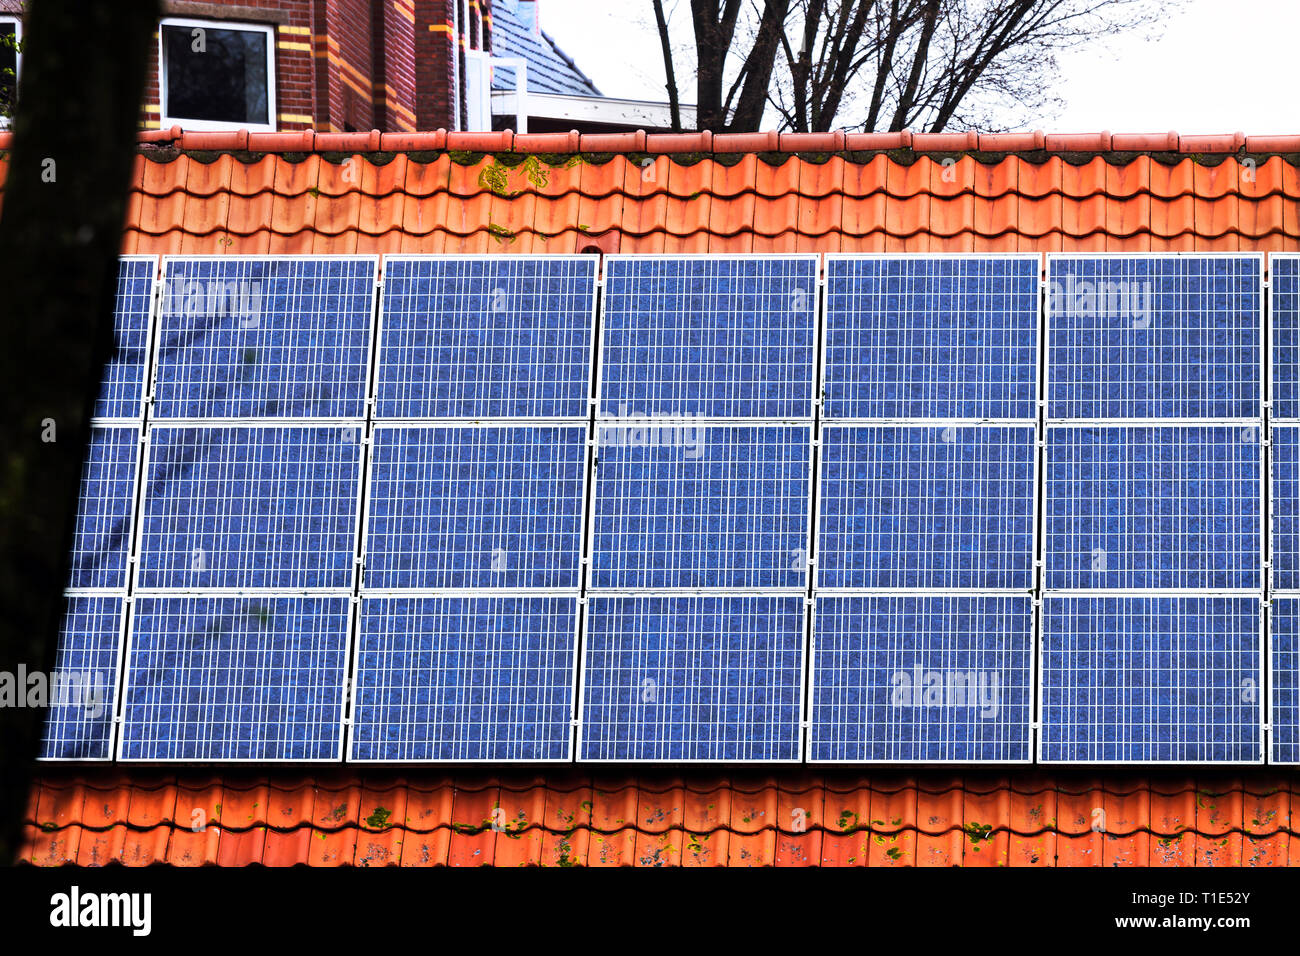 Red tile Roof with solar panels. New solar technologies on the old house. - Stock Image